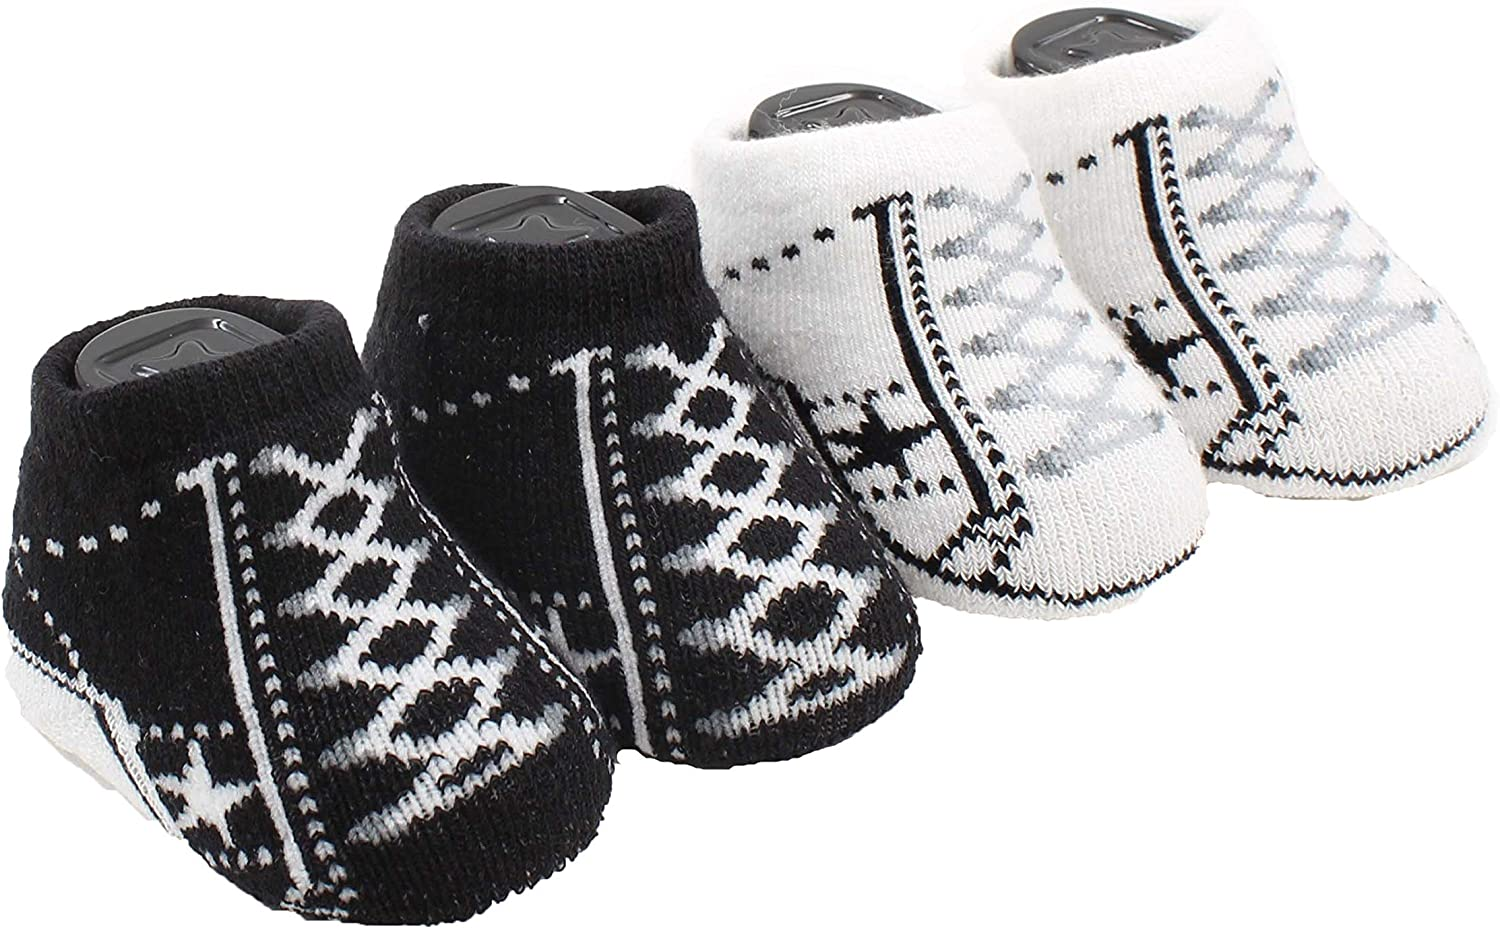 Converse One Star Infant Booties Socks